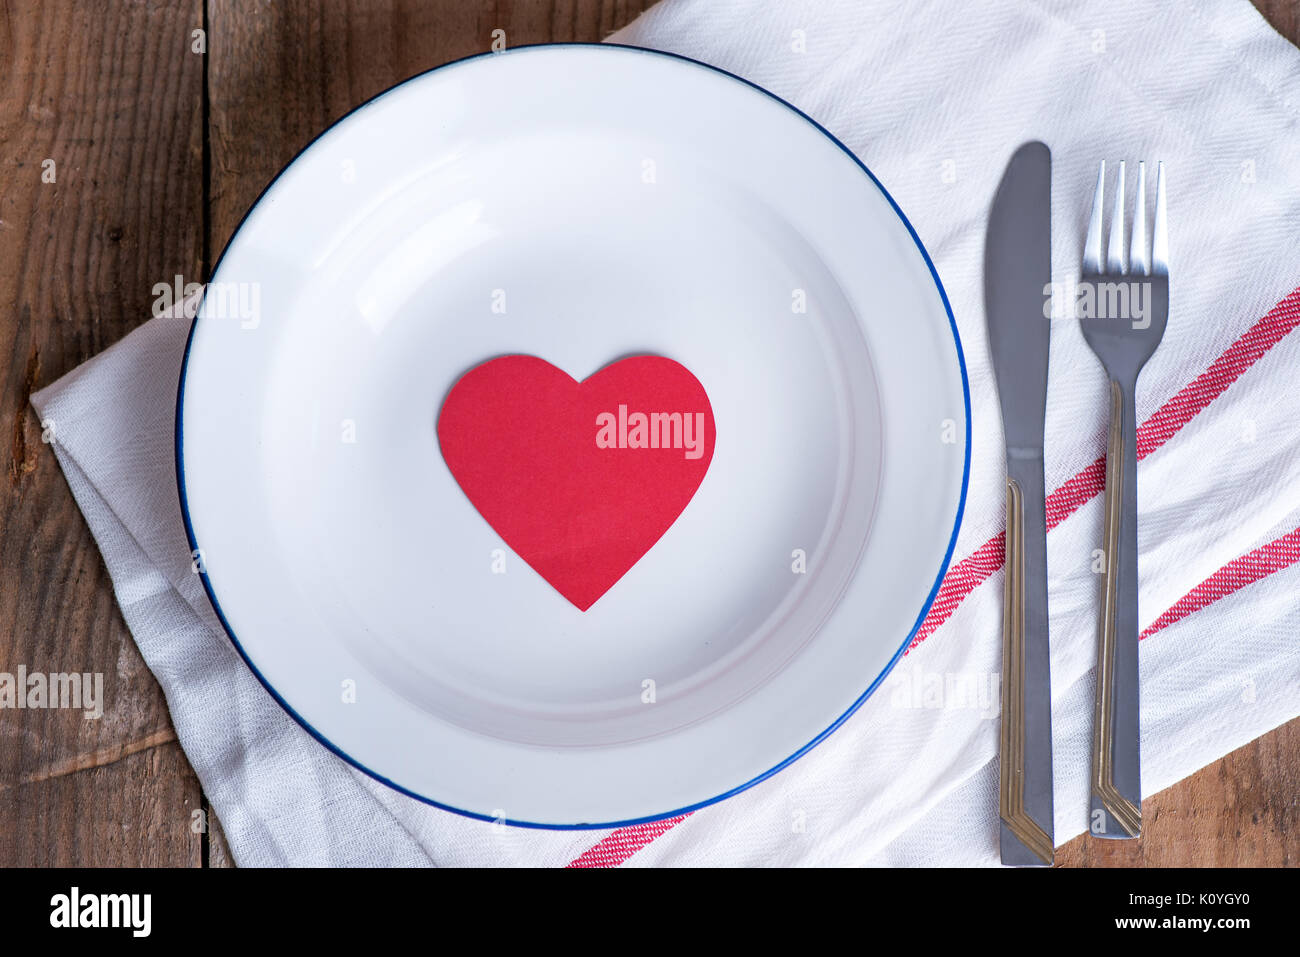 Concept diet and weight loss. Empty plate with red paper heart in the middle of the plate - Stock Image